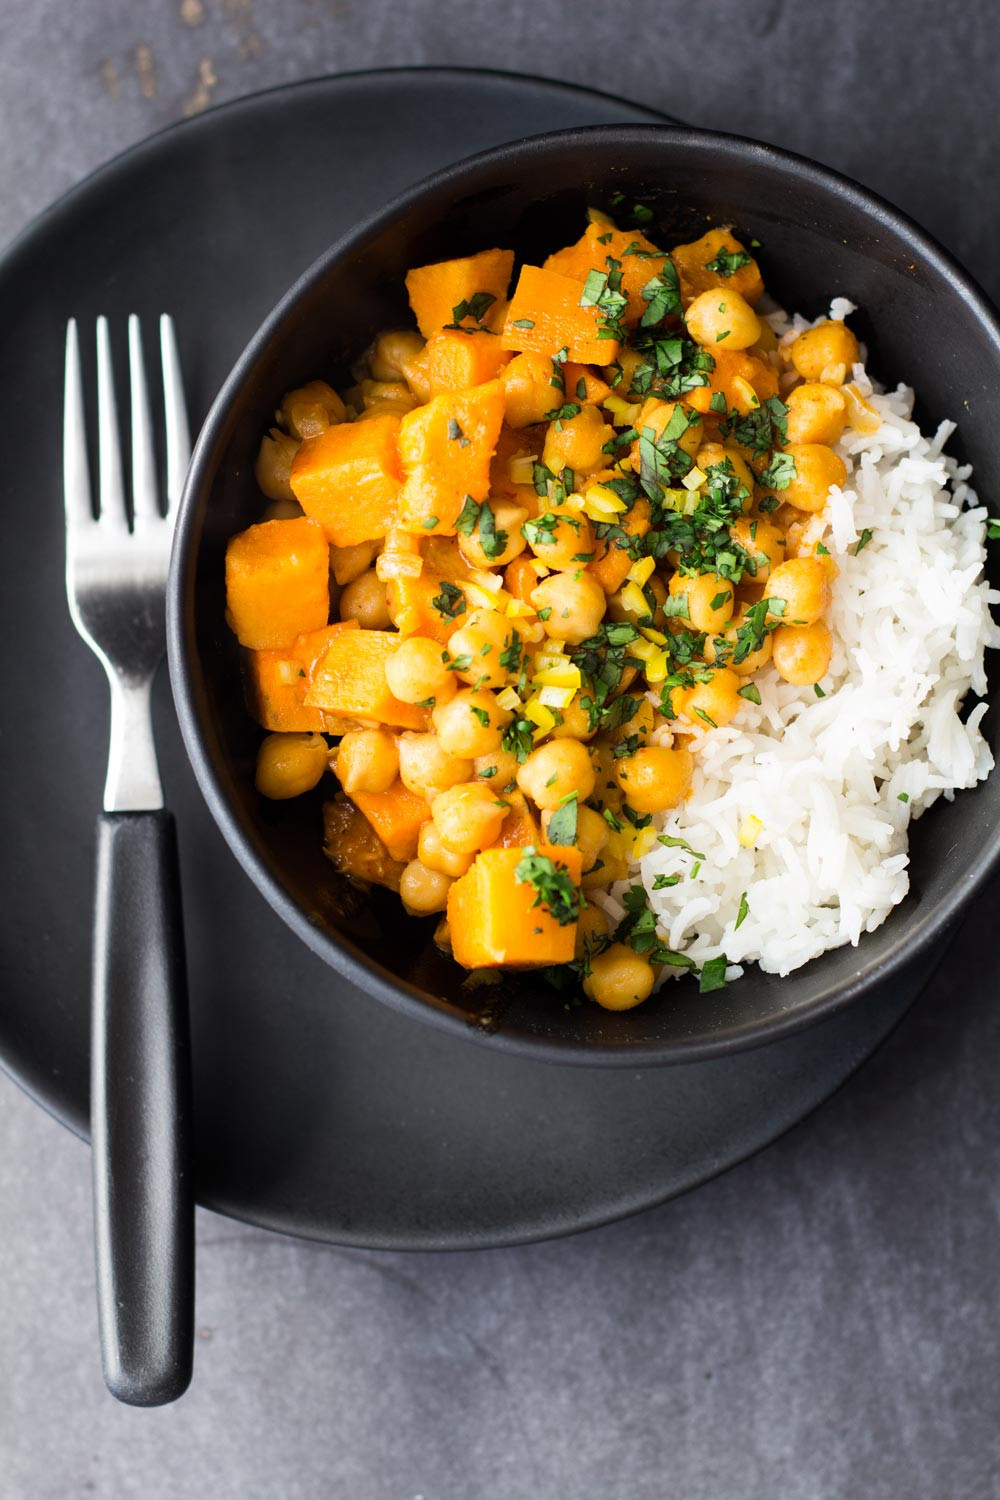 Healthy Chickpea Recipes  Vegan Sweet Potato and Chickpea Curry Green Healthy Cooking